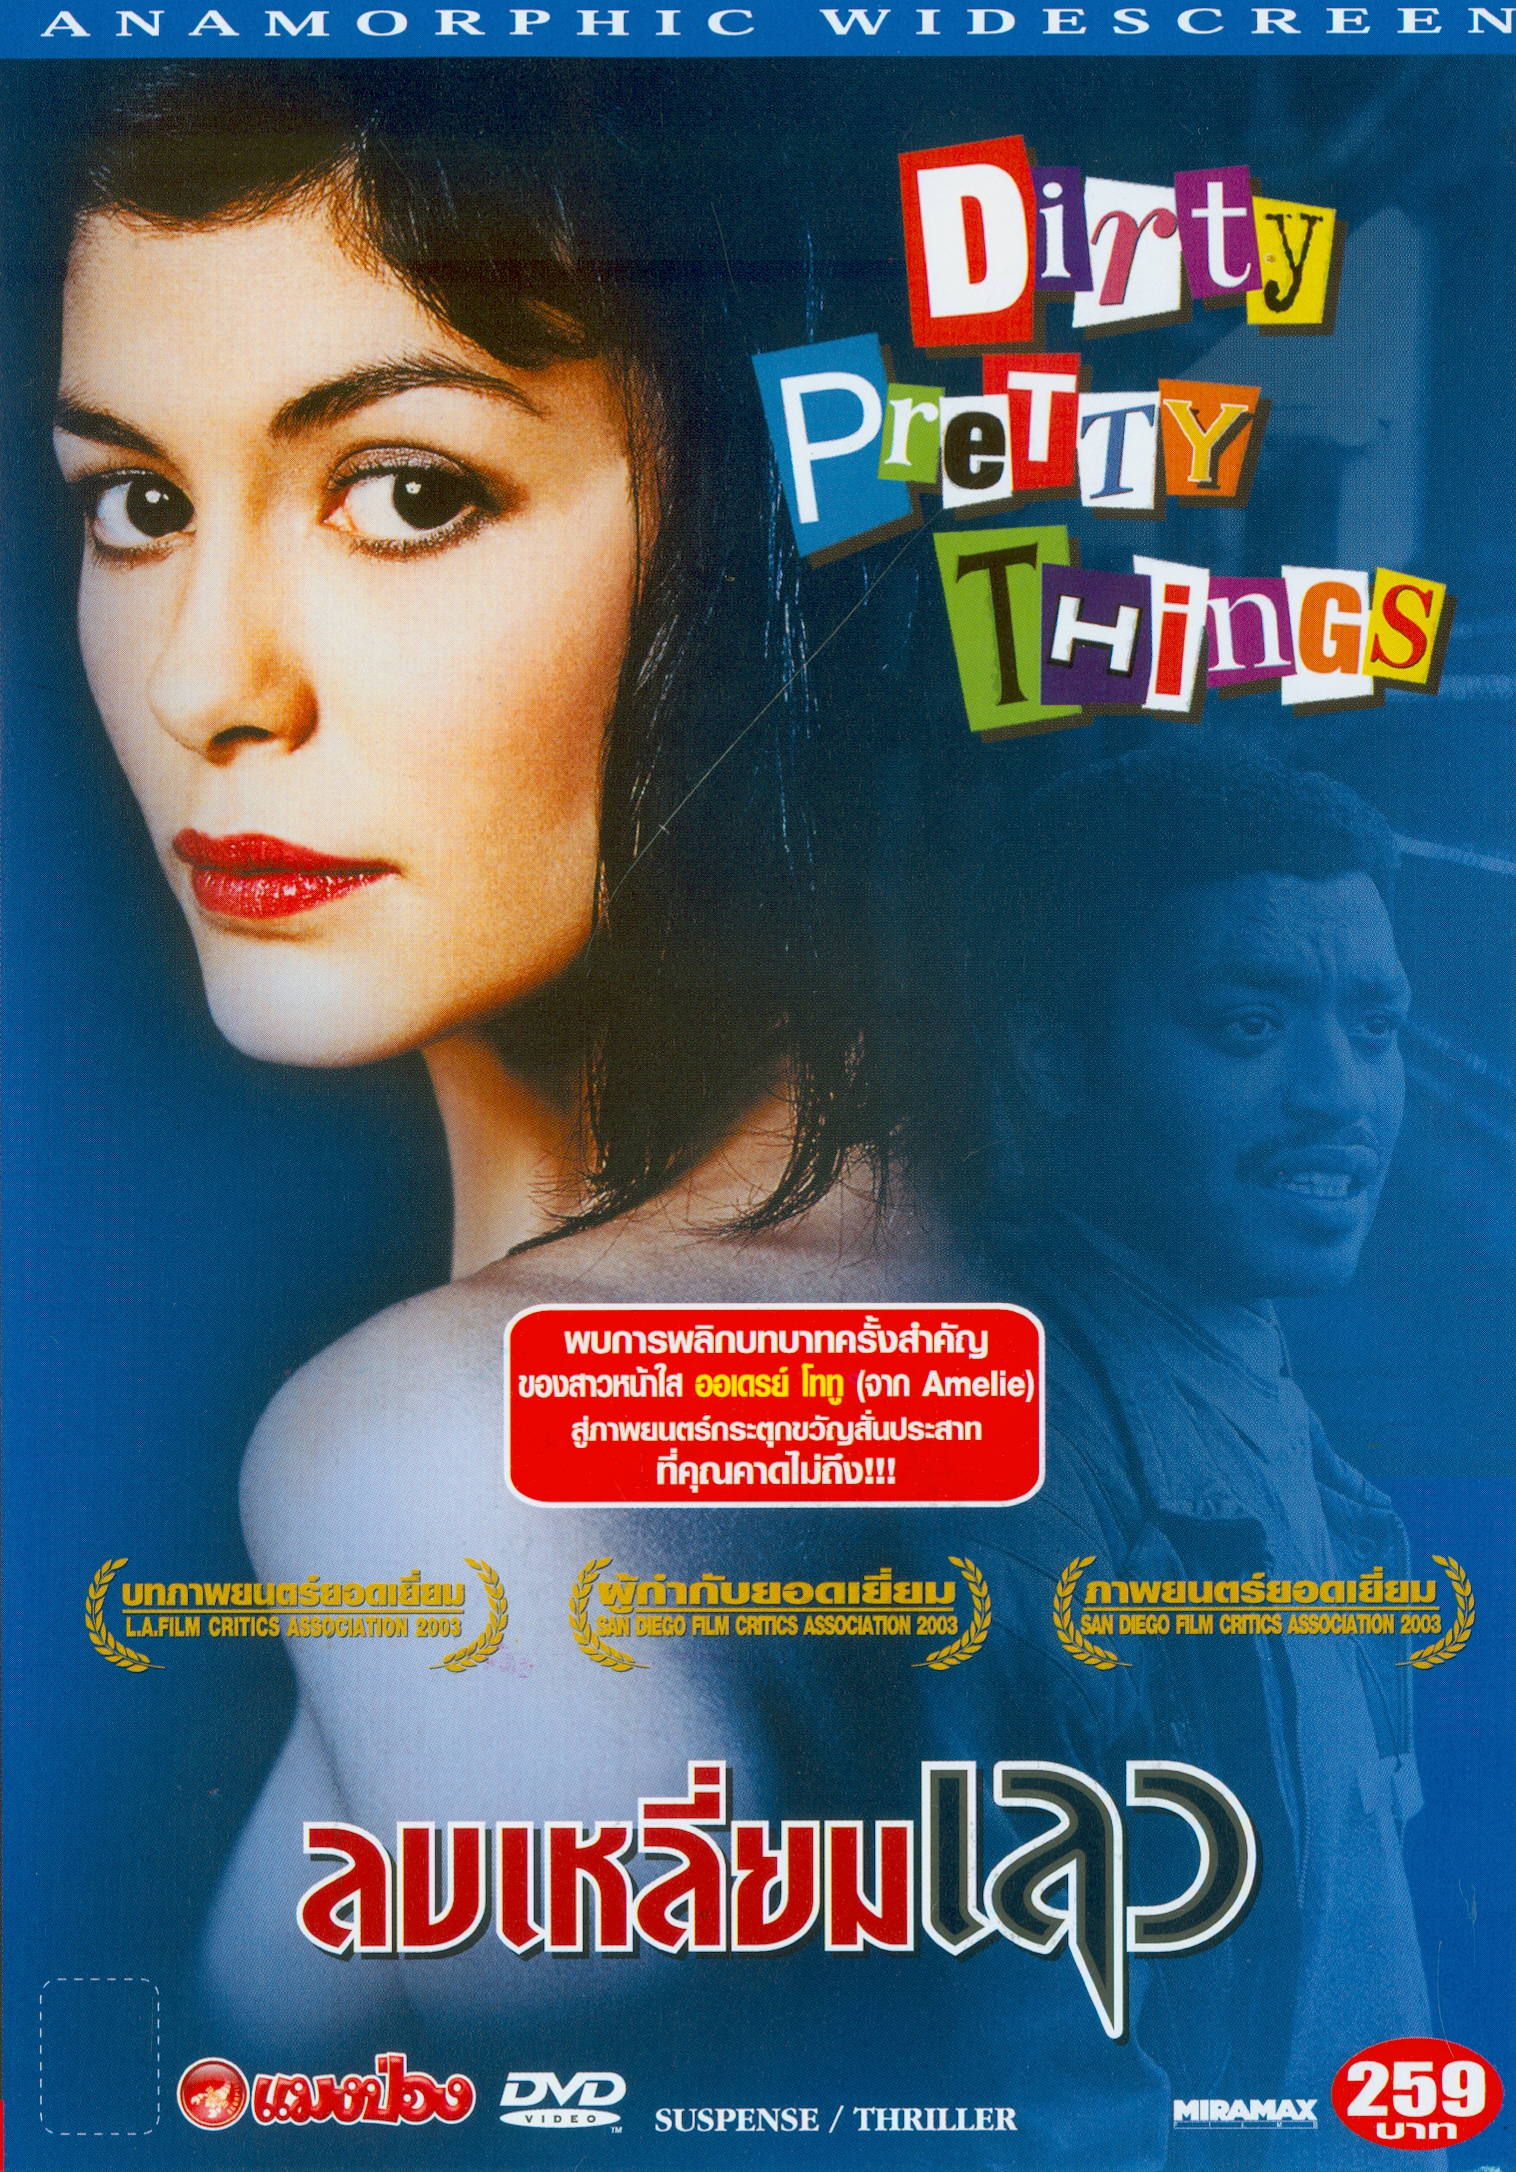 Dirty pretty things[videorecording] /Miramax Films and BBC Films, present ;written by Steven Knight ; produced by Tracey Seaward,Robert Jones ; directed by Stephen Frears||31 ลบเหลี่ยมเลว